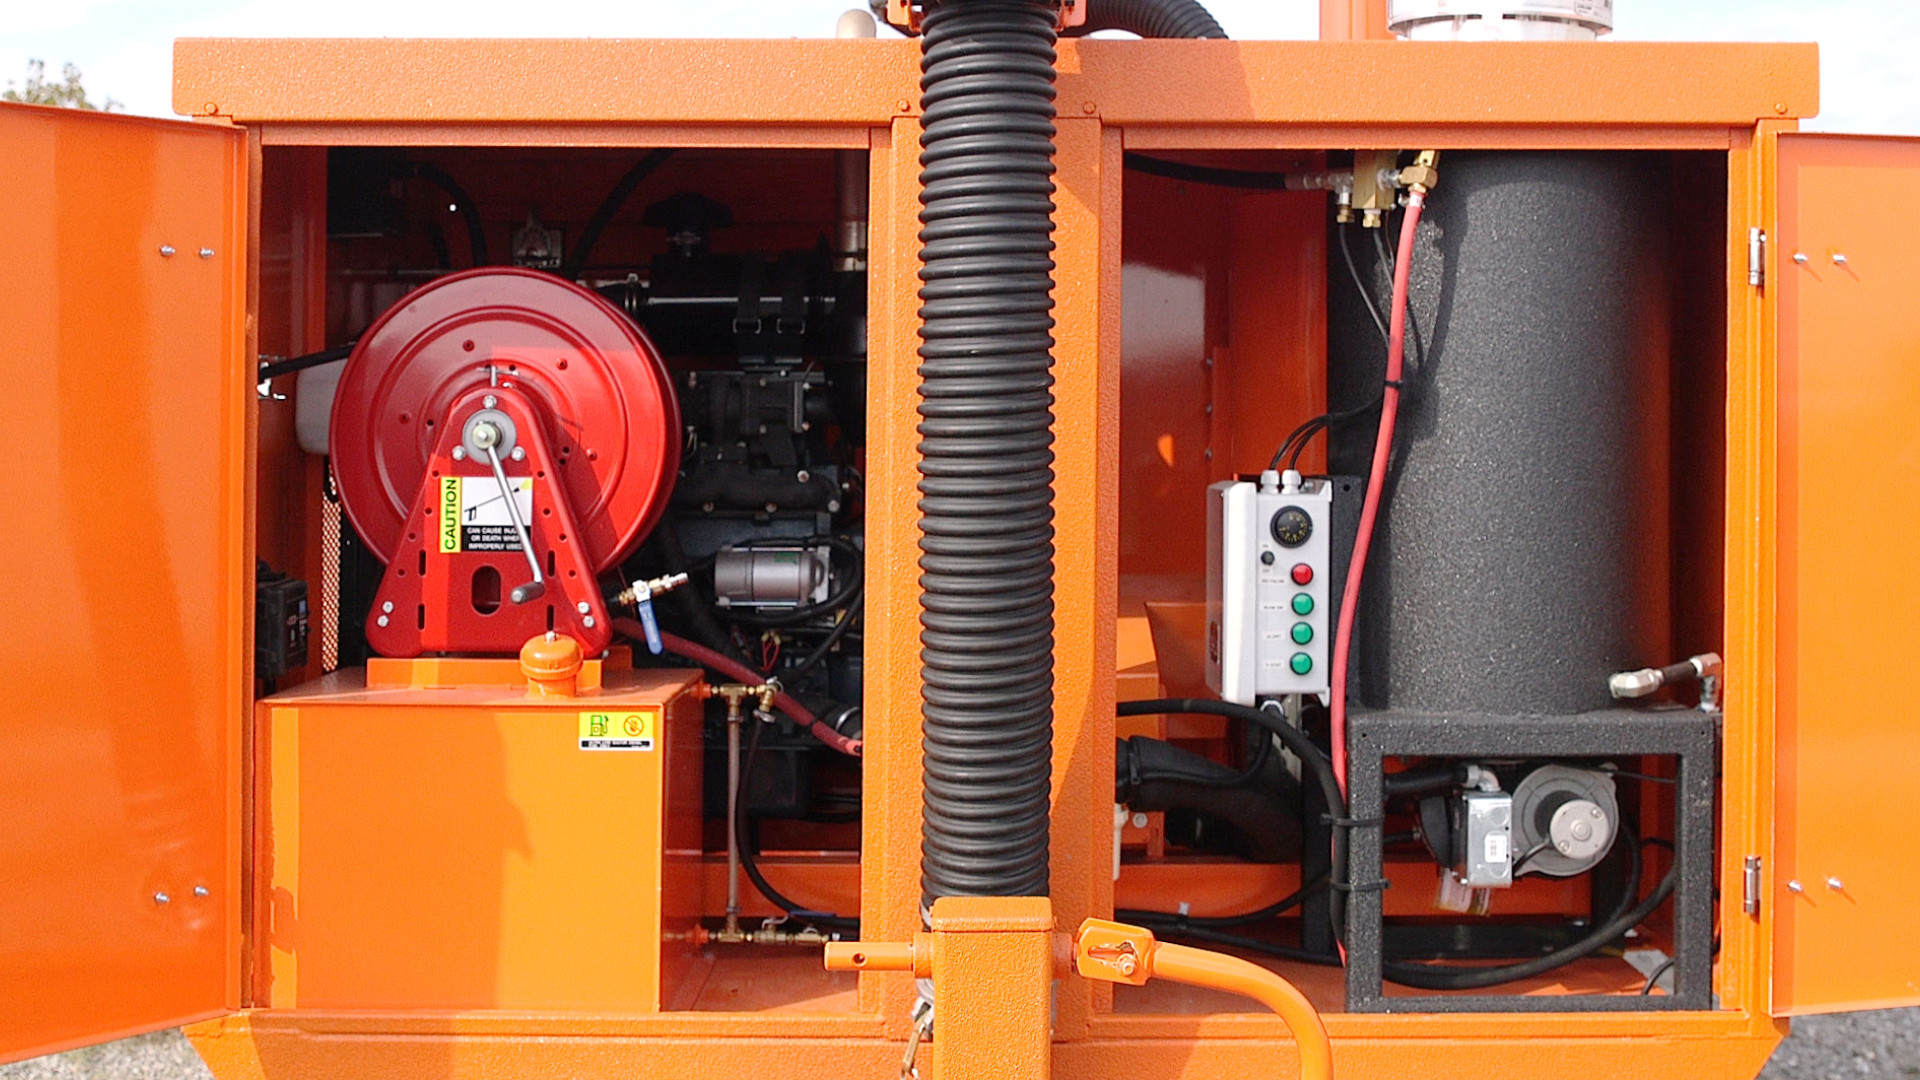 Enclosed hose reel in heated compartment for winter use.